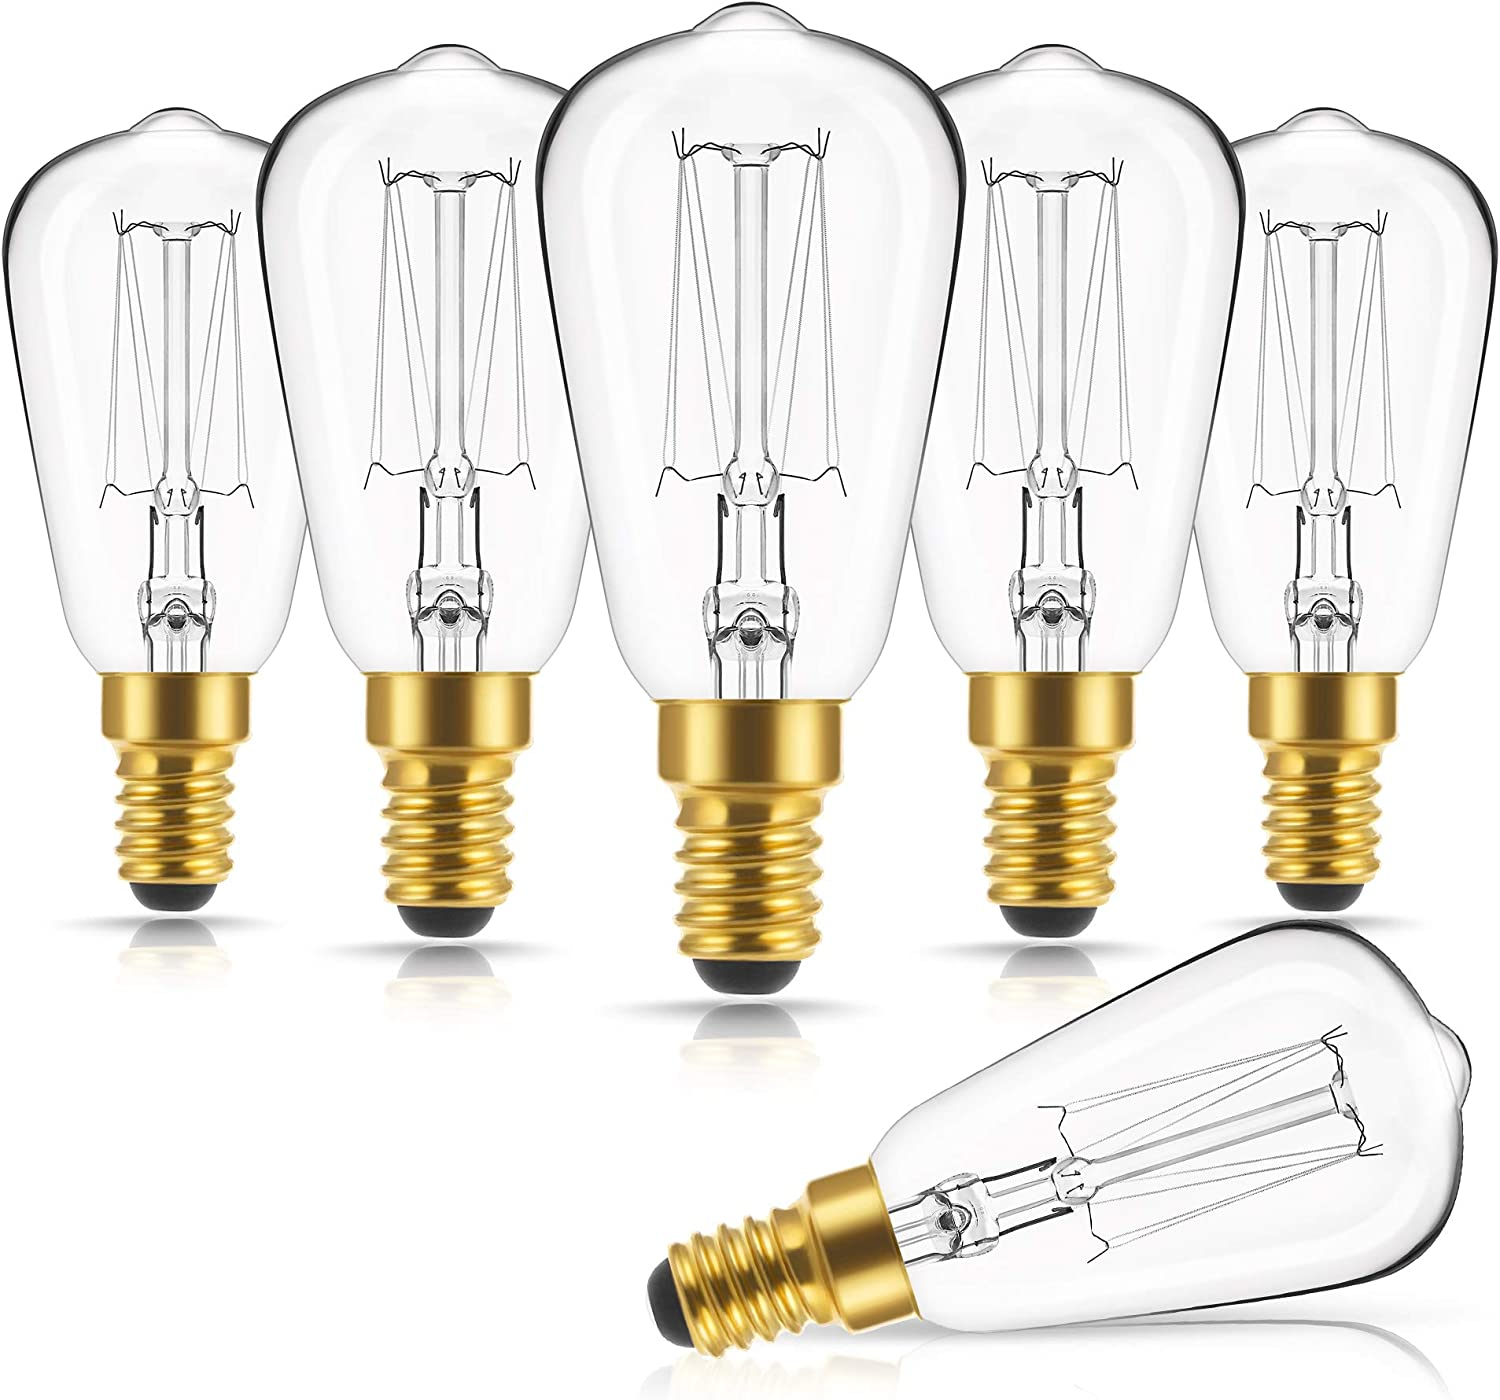 Amazon Com Doresshop Vintage Edison Light Bulbs 40w Dimmable St38 Antique Incandescent Light Bulb 110v 130v E12 Candelabra Base 240lm Warm White 2700k Squirrel Cage Lamp For Home Light Fixtures 6 Pack Home Improvement